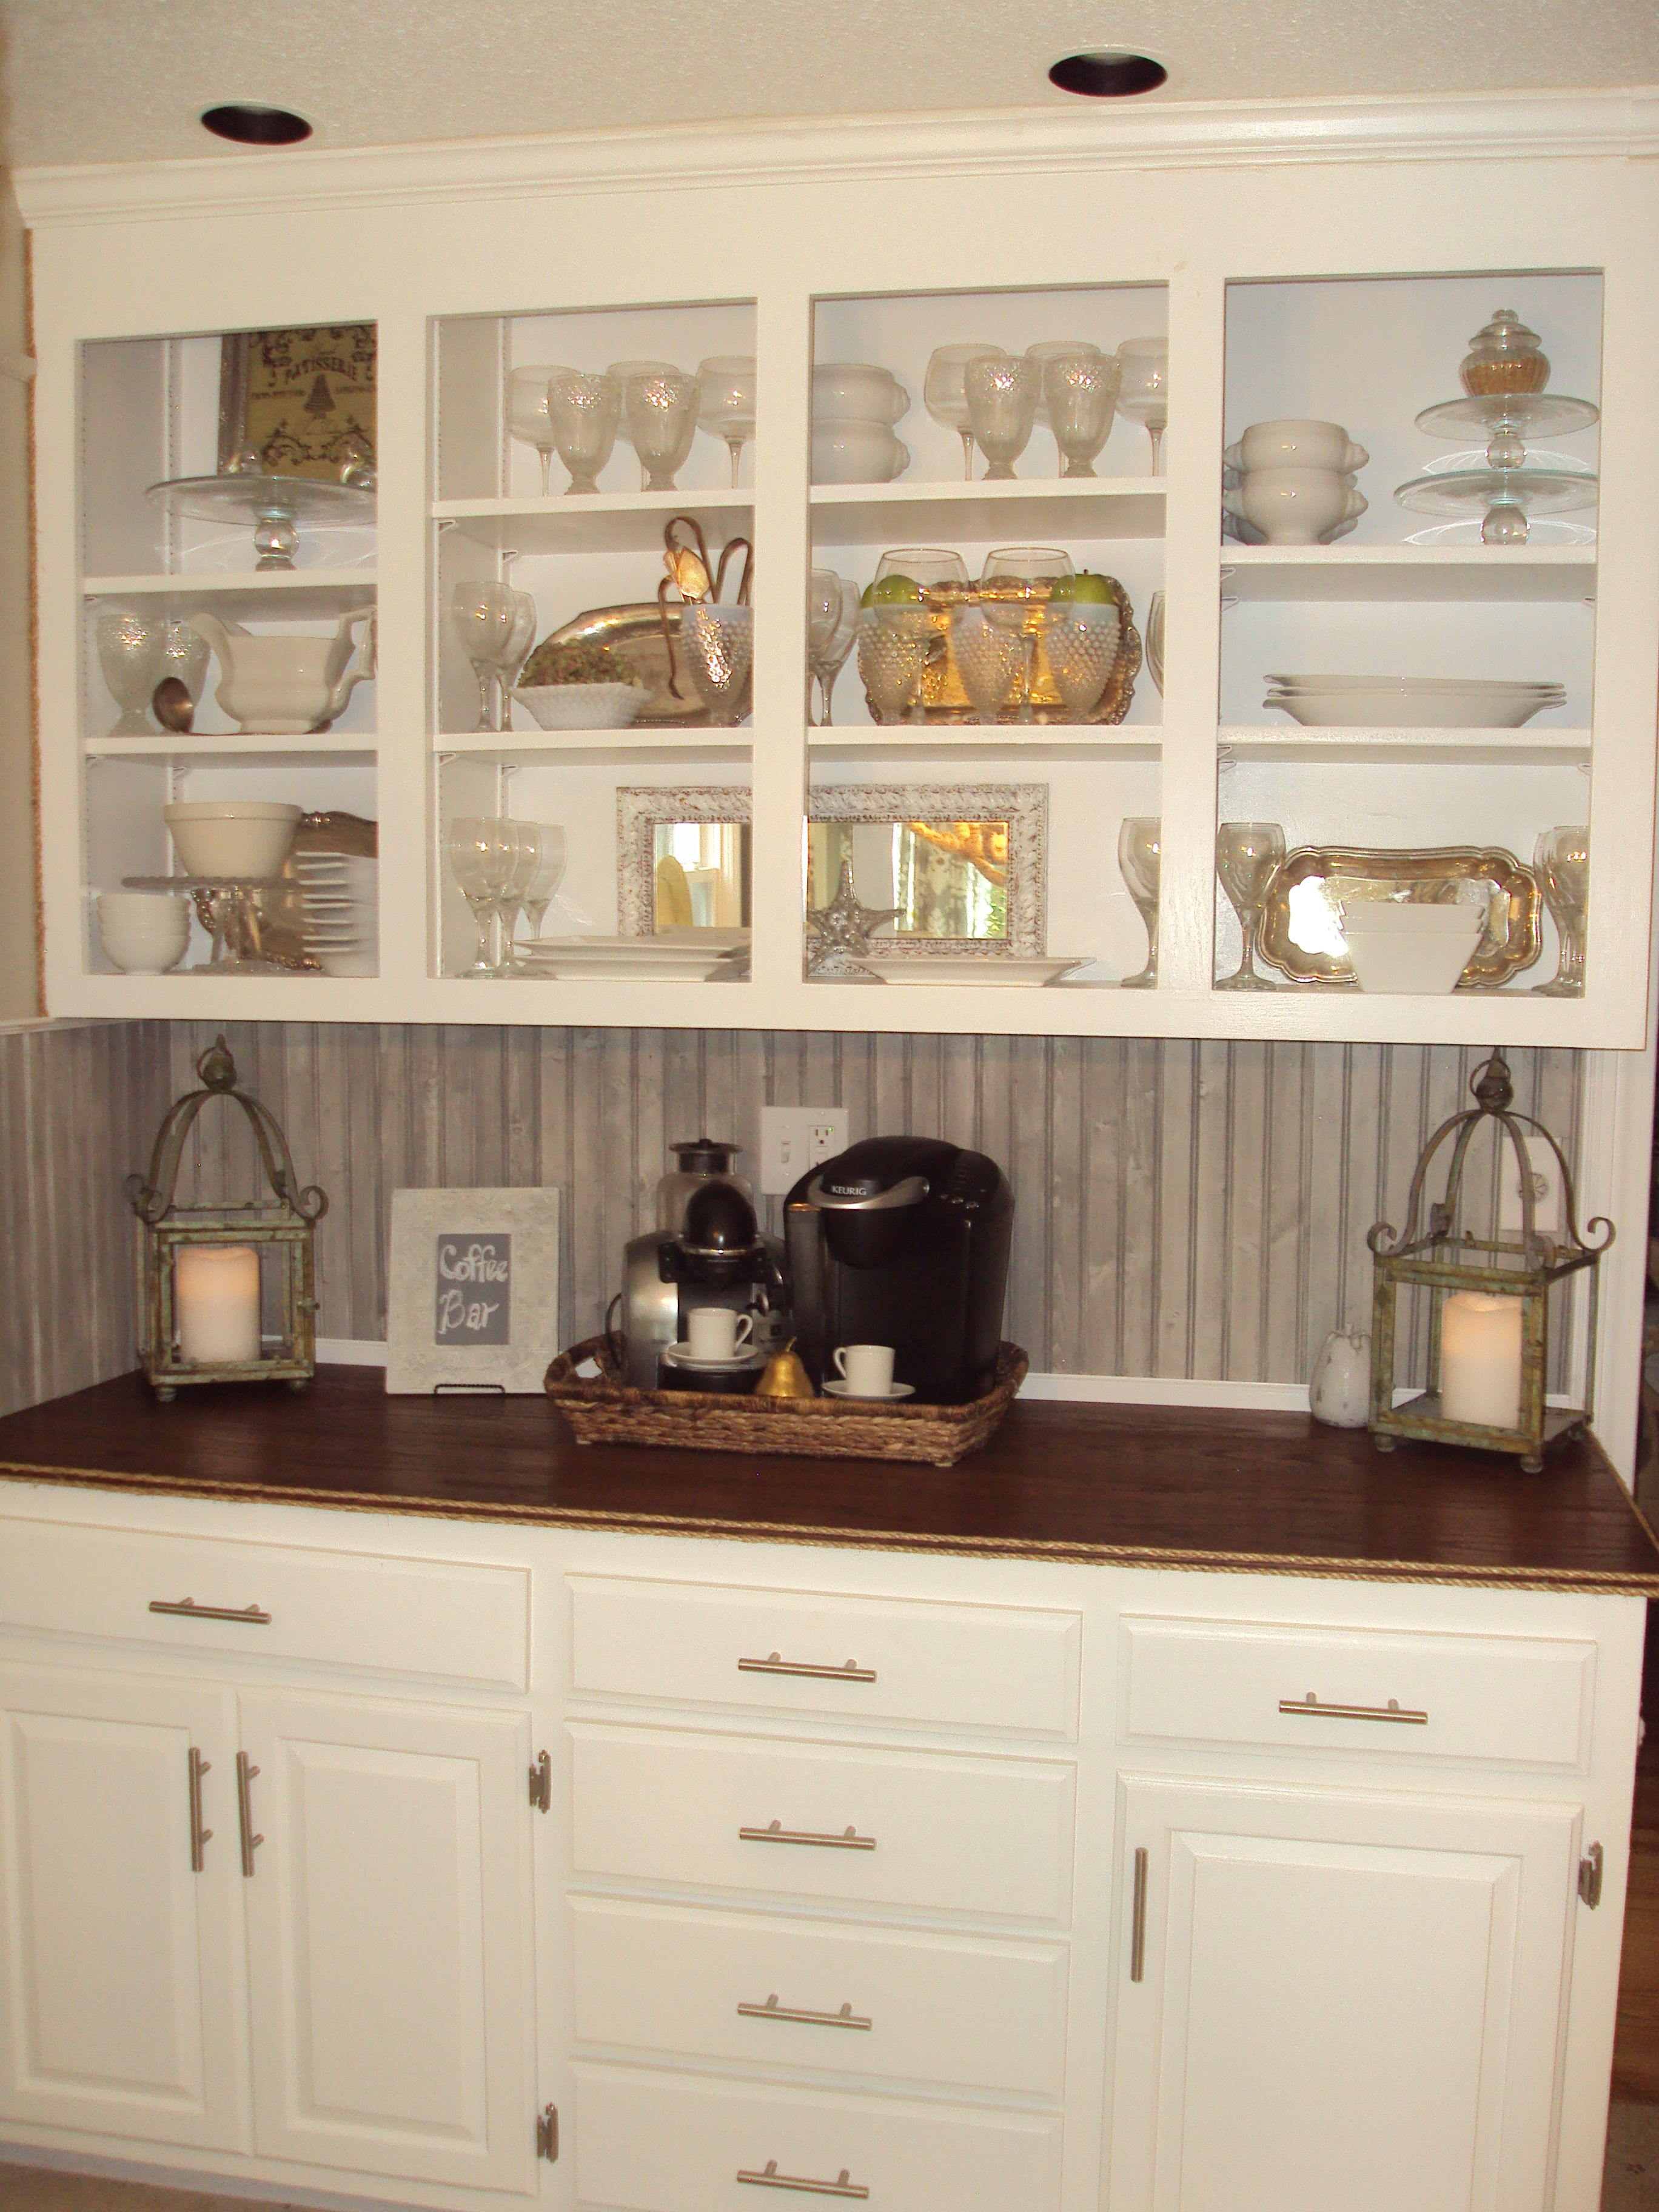 This Is My Coffee Bar That I Refurbished By Painting The Outdated Oak Cabinets Simply White By Bm And Removing Kitchen Remodel Kitchen Renovation Oak Cabinets